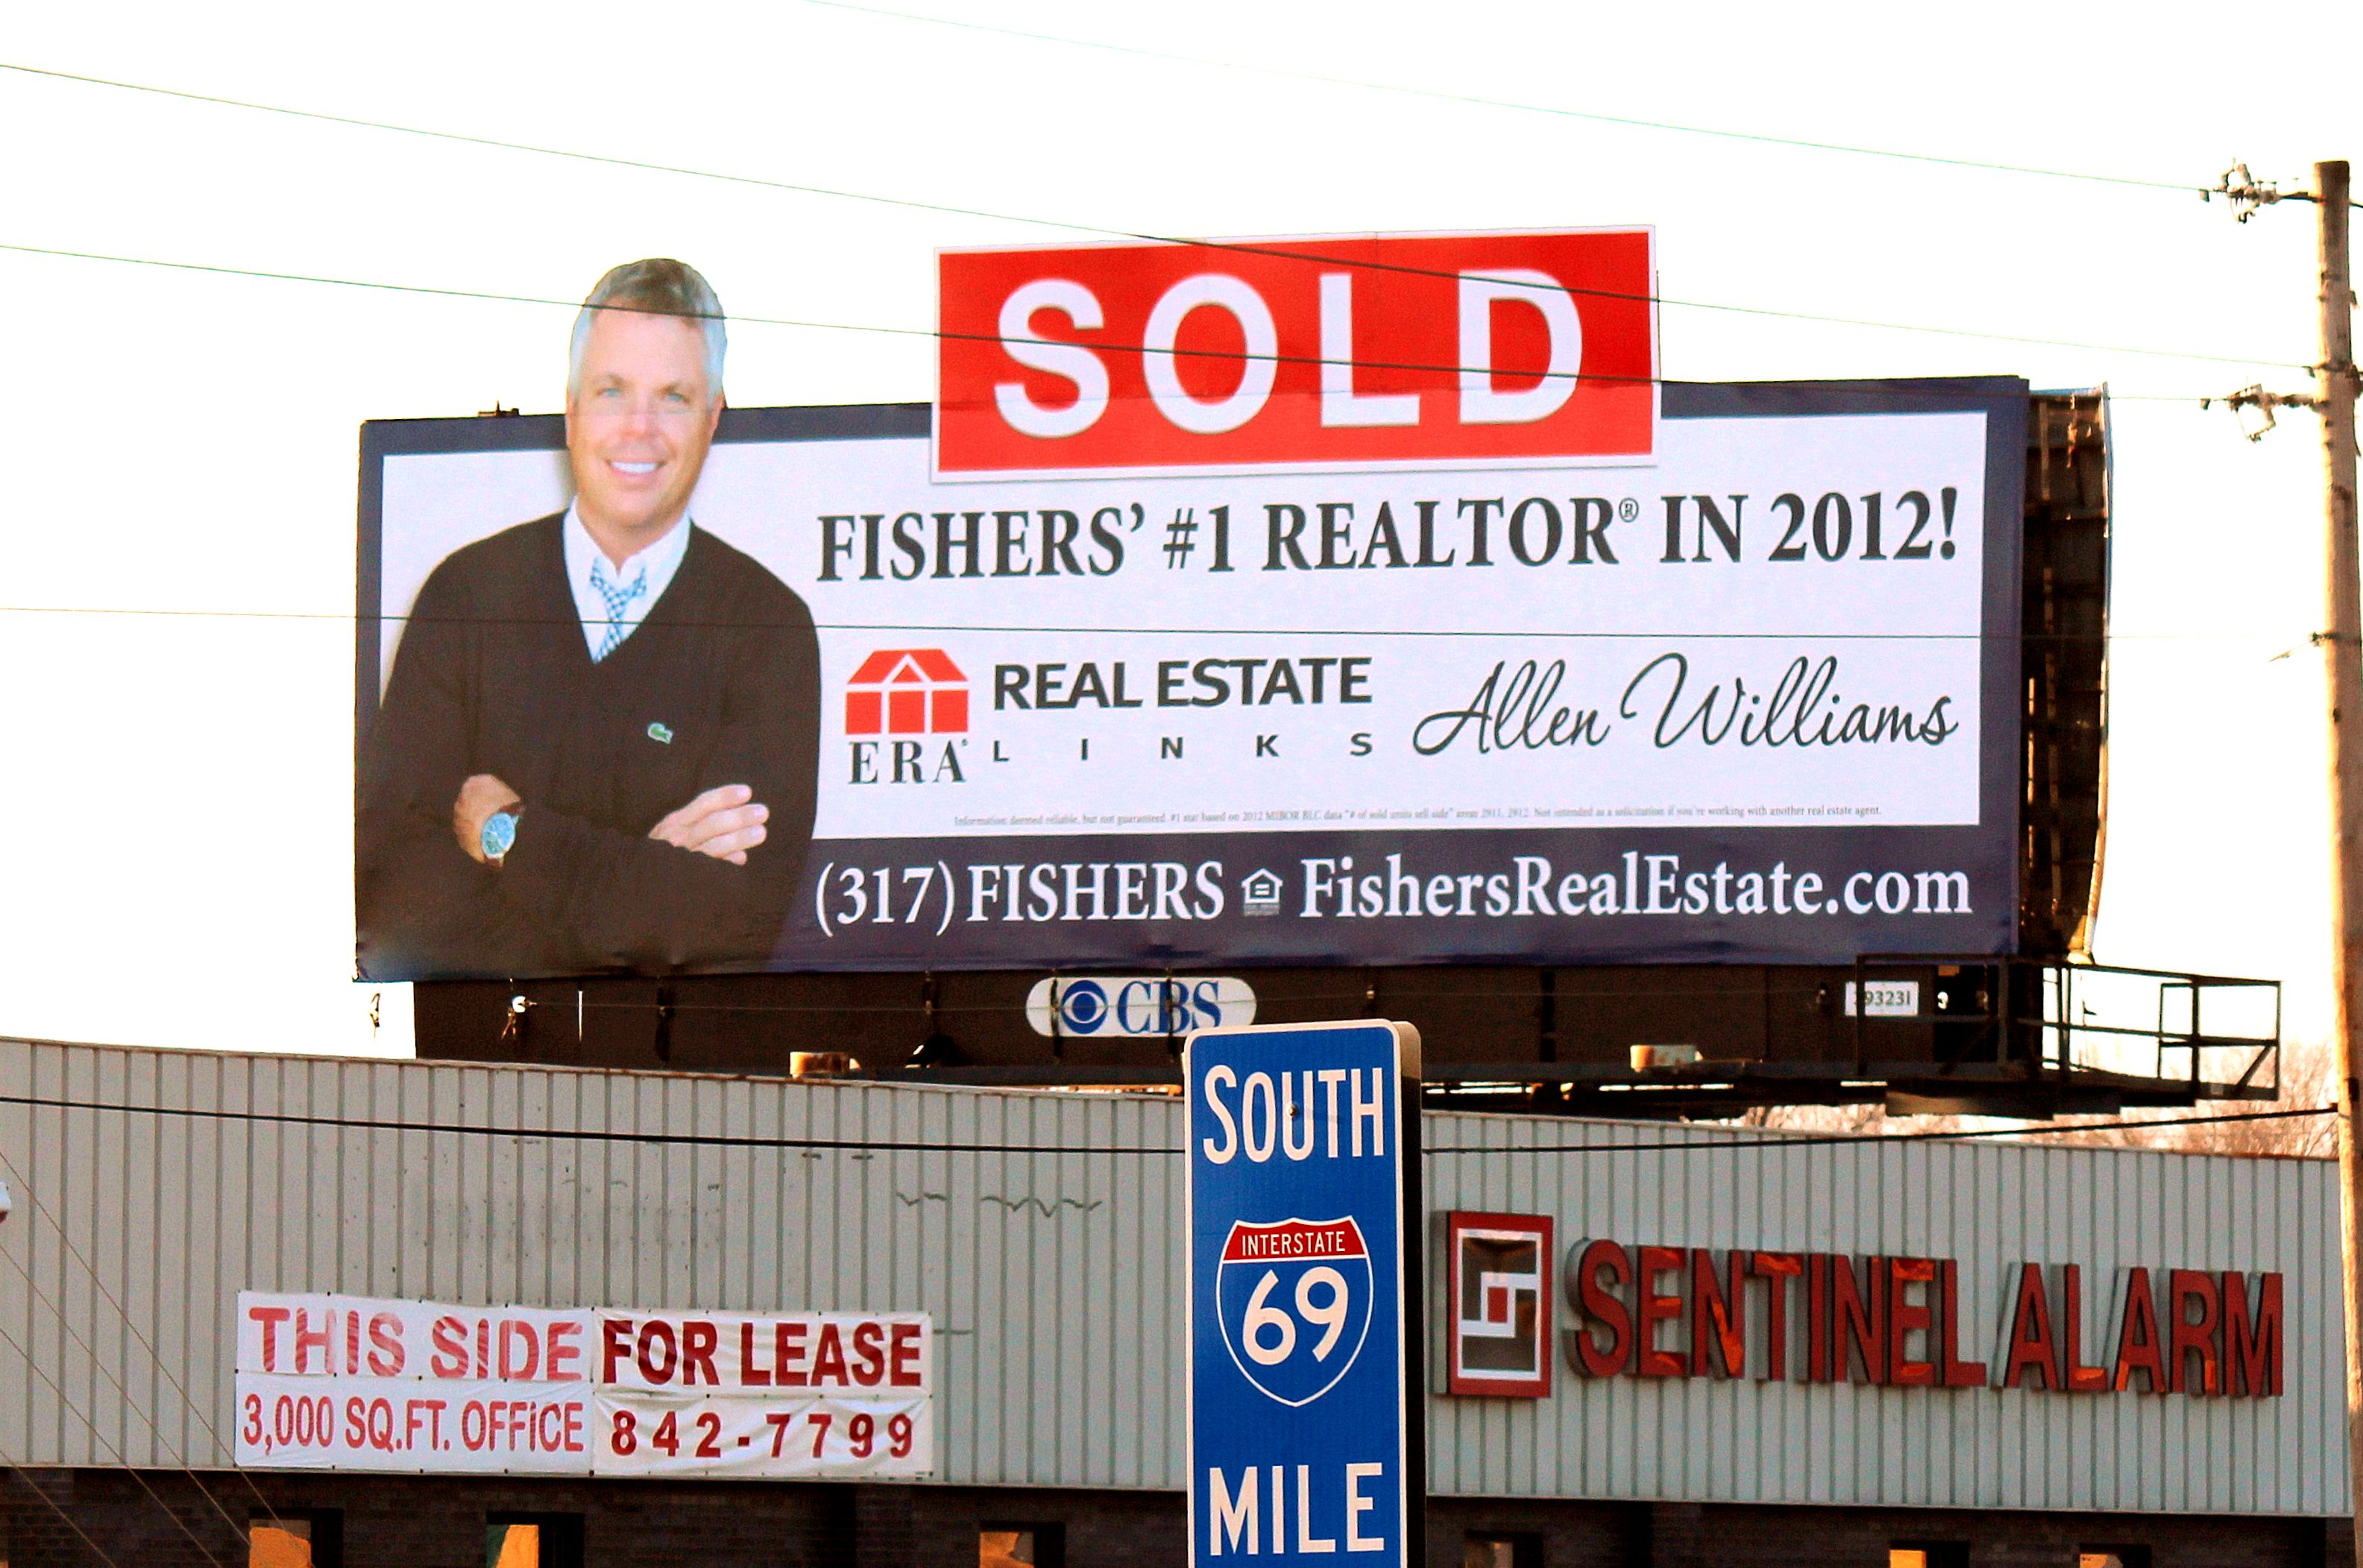 Allen Williams, Real Estate Agent, Fishers, Indiana